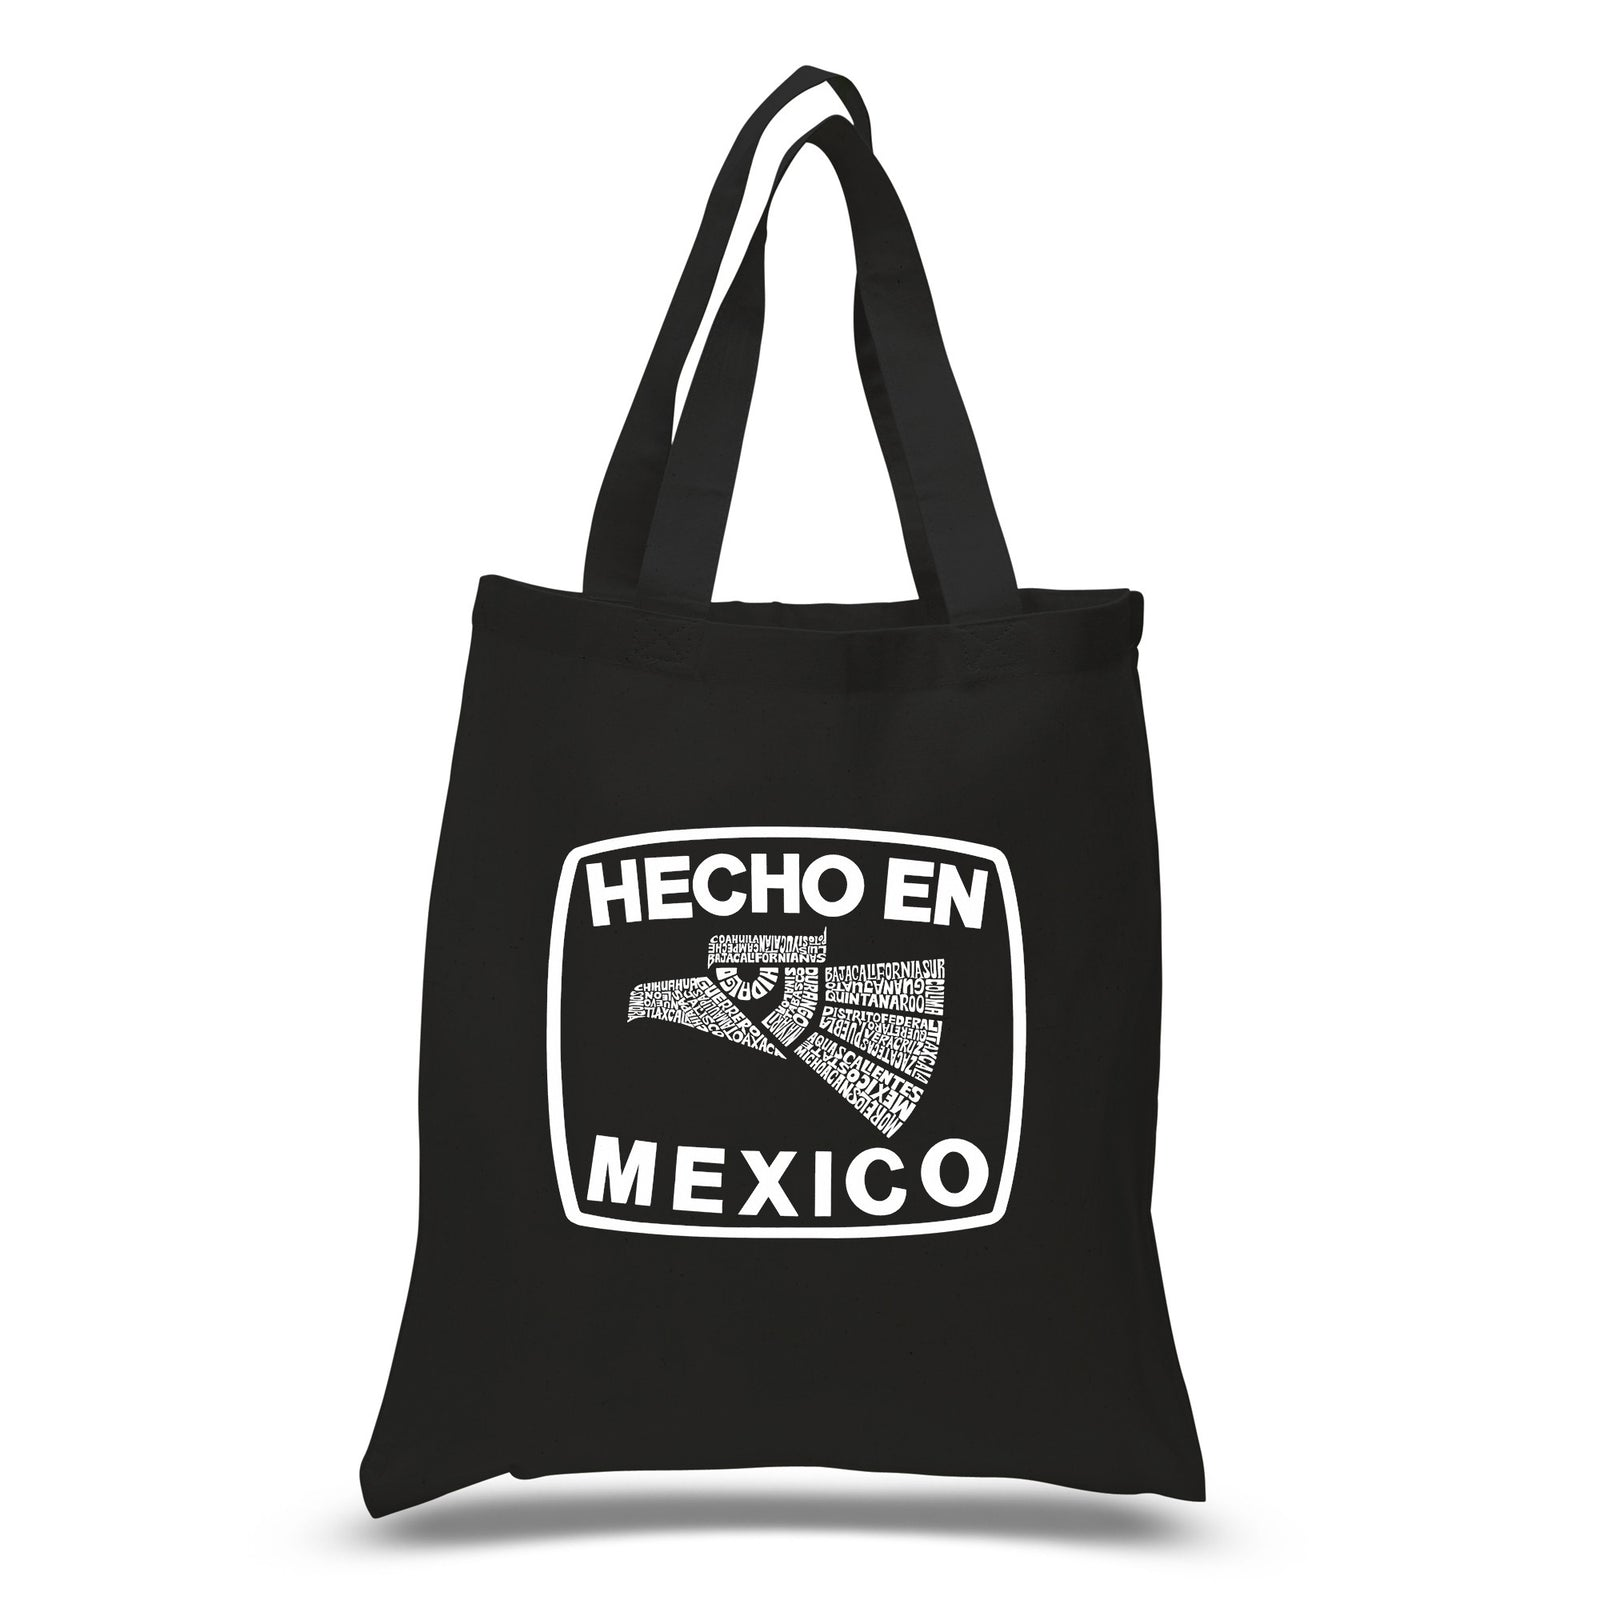 Small Tote Bag - HECHO EN MEXICO